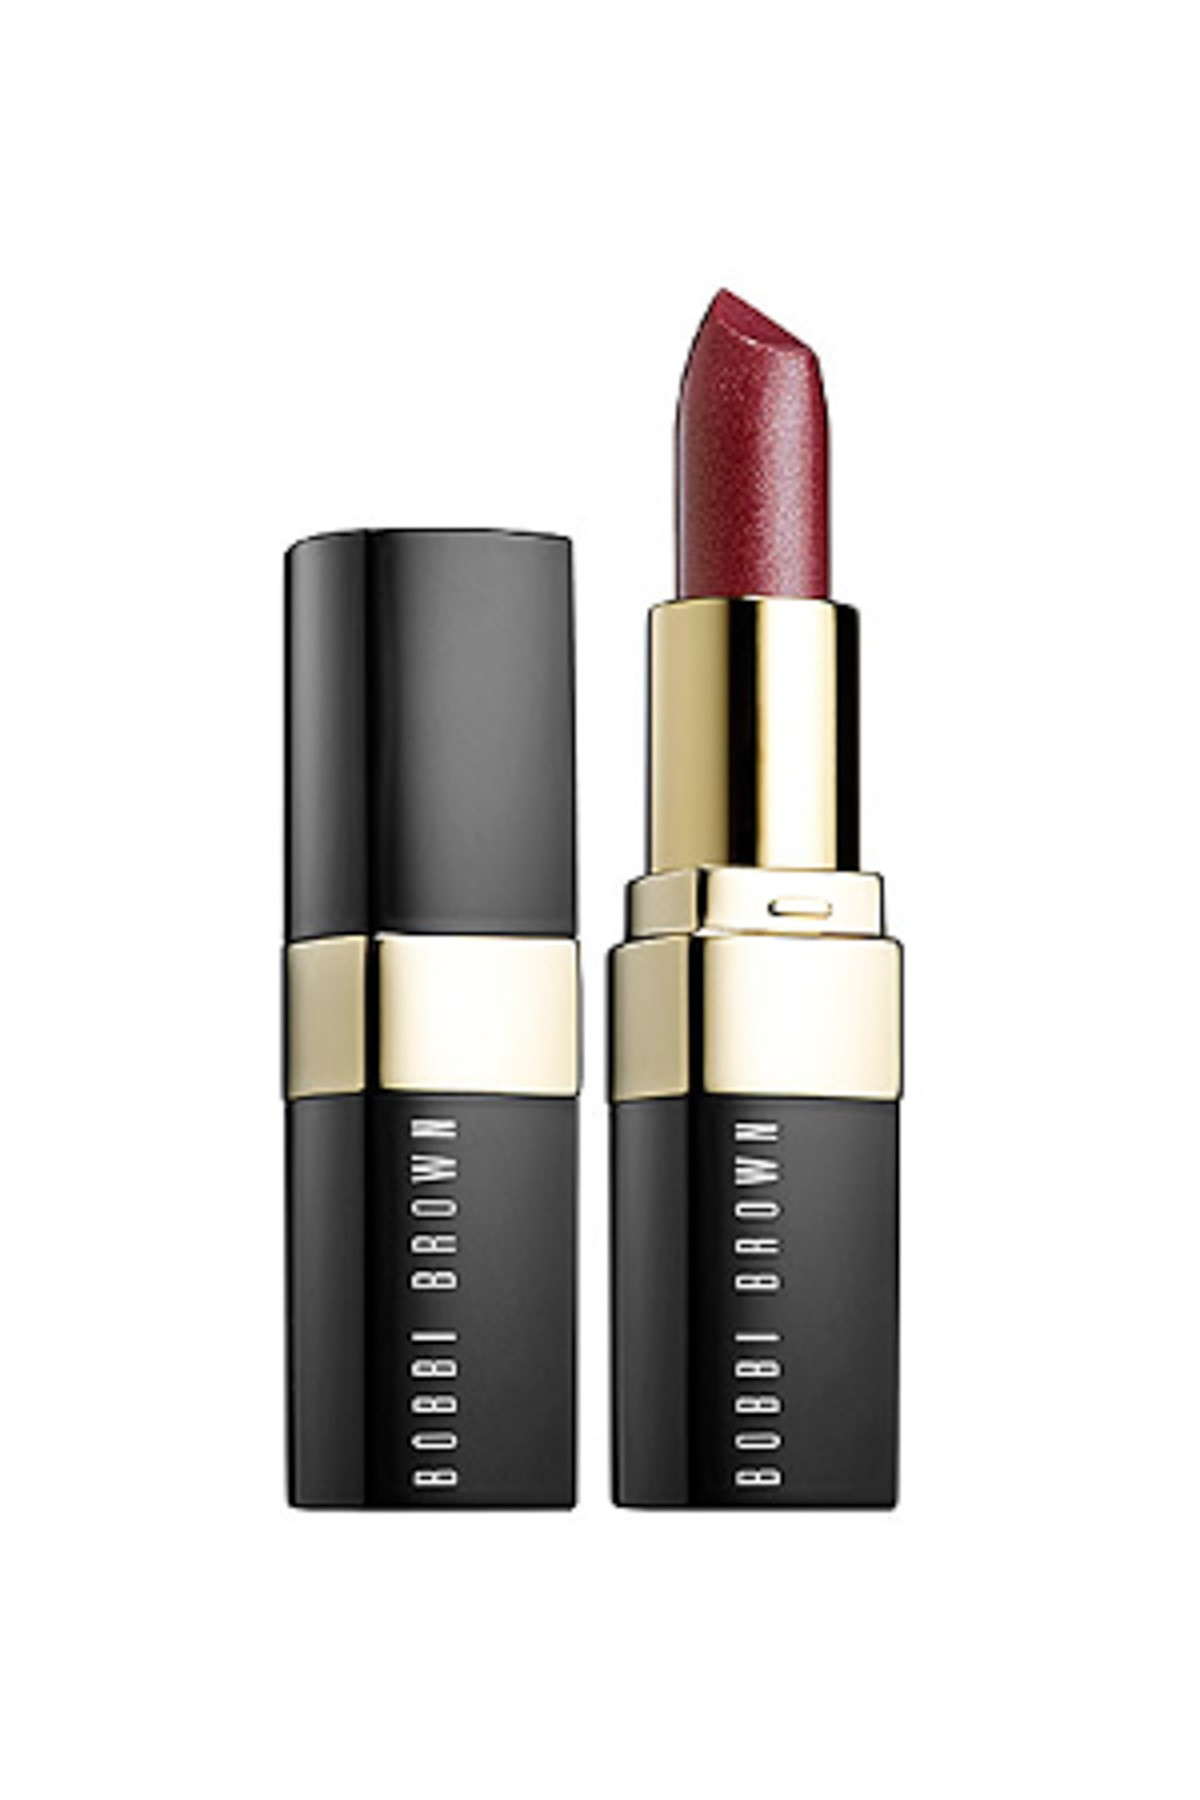 Bobbı Brown Işıltılı Ruj – Lip Color İn Shimmer Finish Plum 716170127583 – 123.25 TL